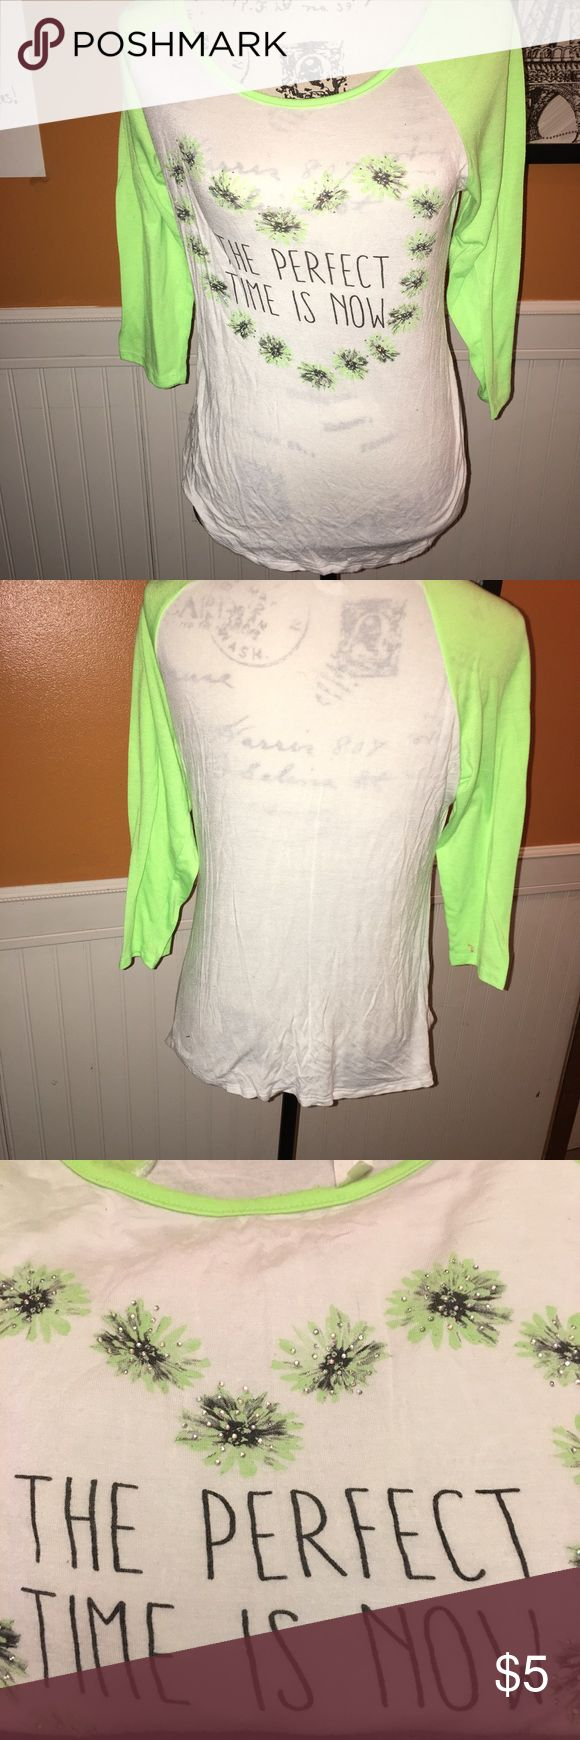 Deb Shop LS tee shirt Rhine  stones size L A part of the Deb collection is this pretty juniors size large longsleeved Rhine stone shirt pre worn size L Deb Shop Tops Tees - Long Sleeve